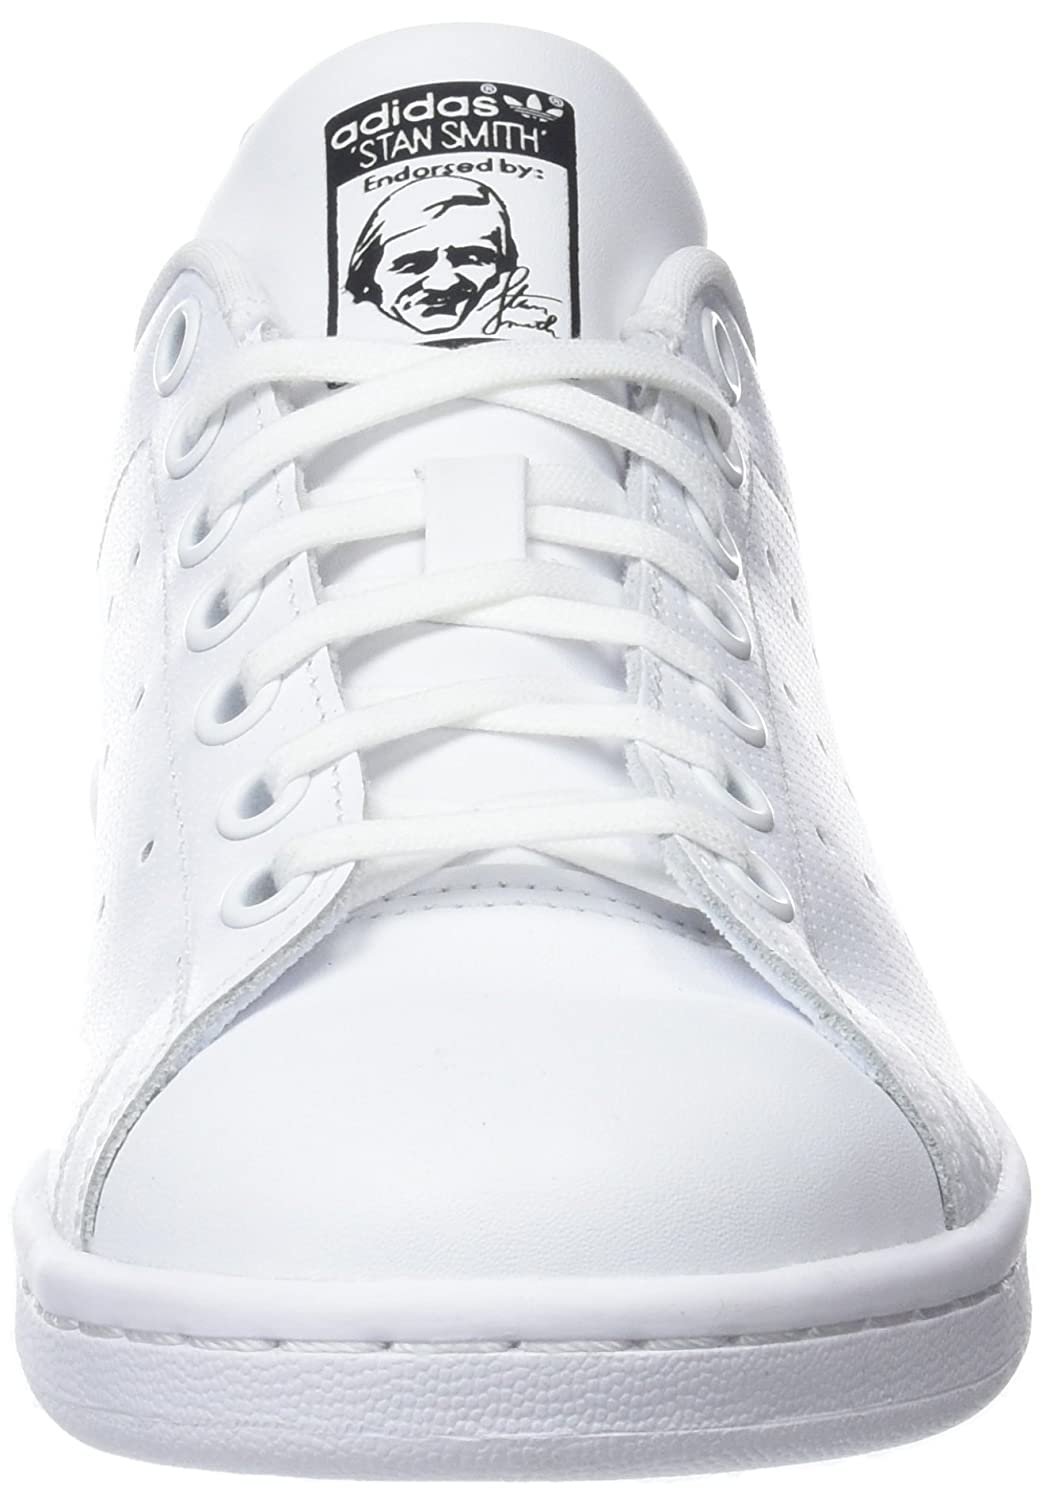 adidas – Stan Smith J, Sneaker Unisex 10156 – Adulto Db1206) Avorio (White/Black Db1206) b4e2052